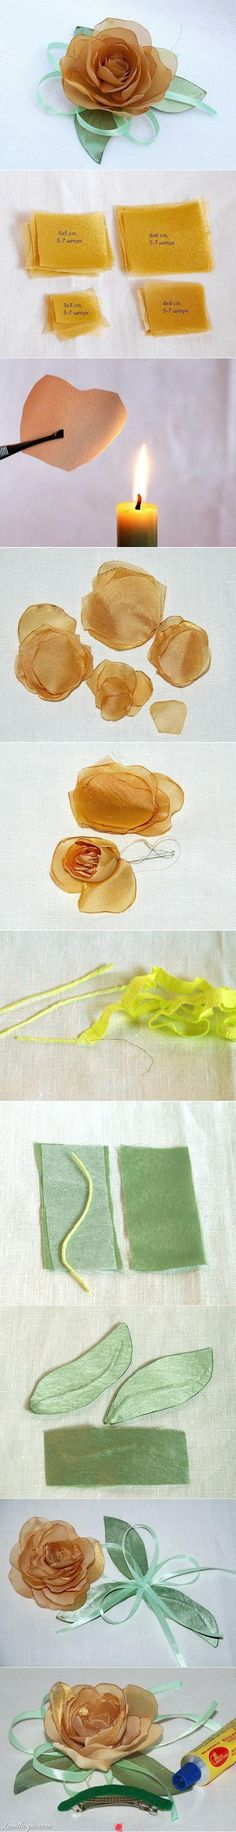 DIY Hair Flower Bow flowers diy crafts home made easy crafts craft idea crafts ideas diy ideas diy crafts diy idea do it yourself diy projects diy craft handmade